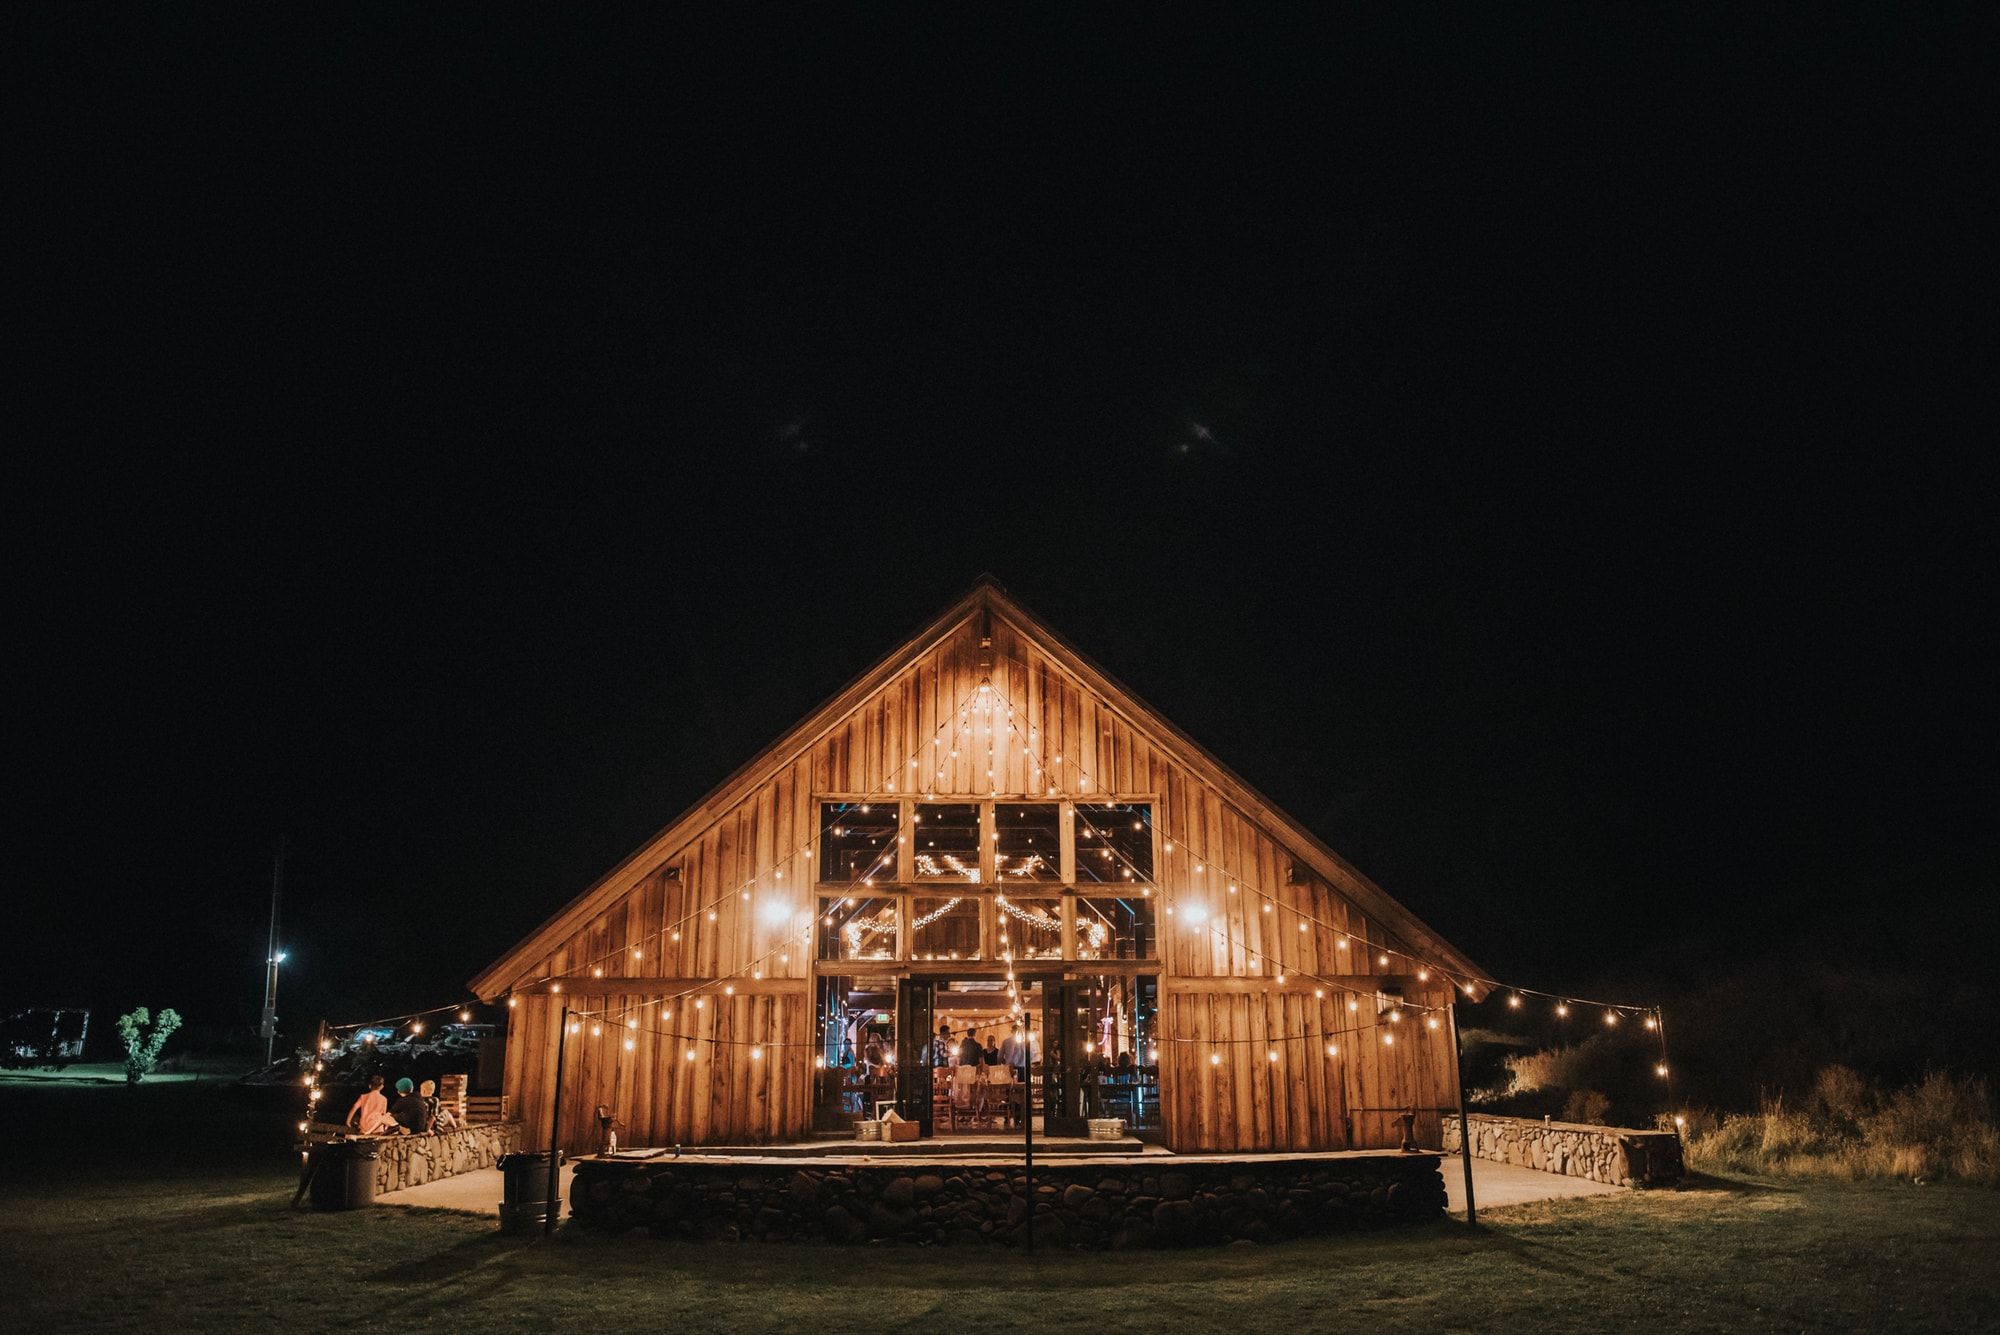 back view of the cattle barn lit up at night